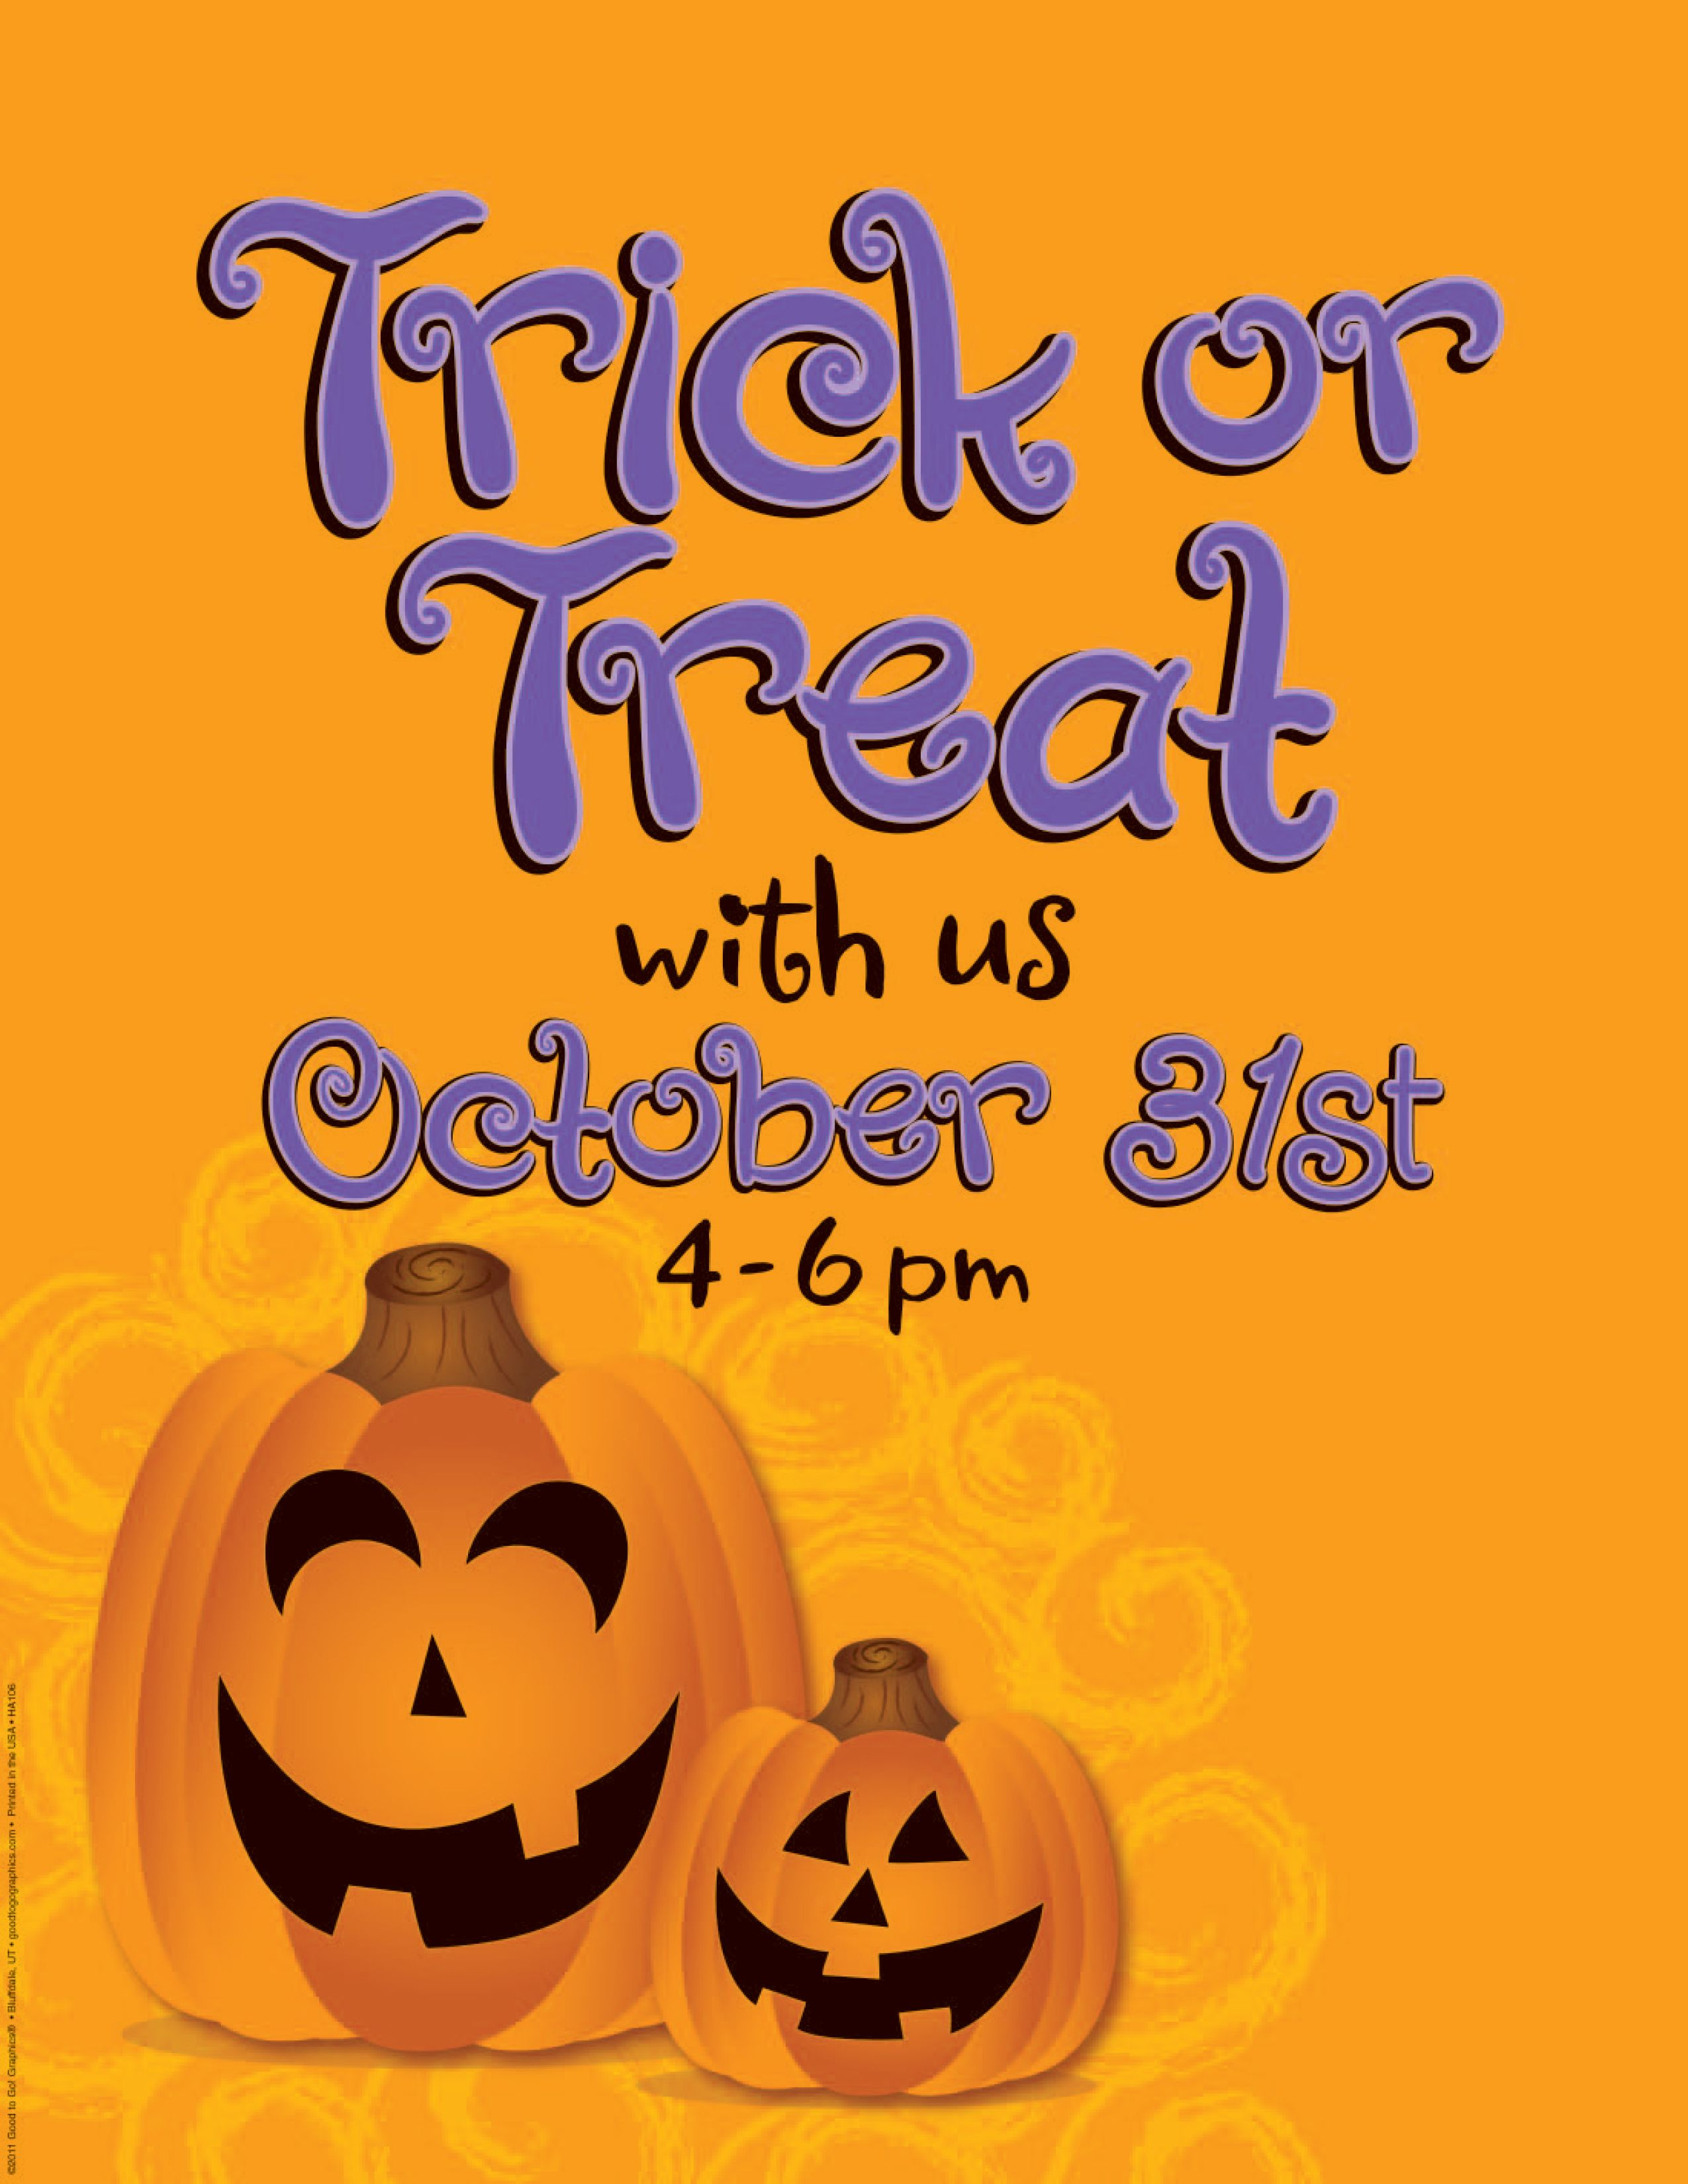 save the date for #trickortreat at bay city mall on #halloween night